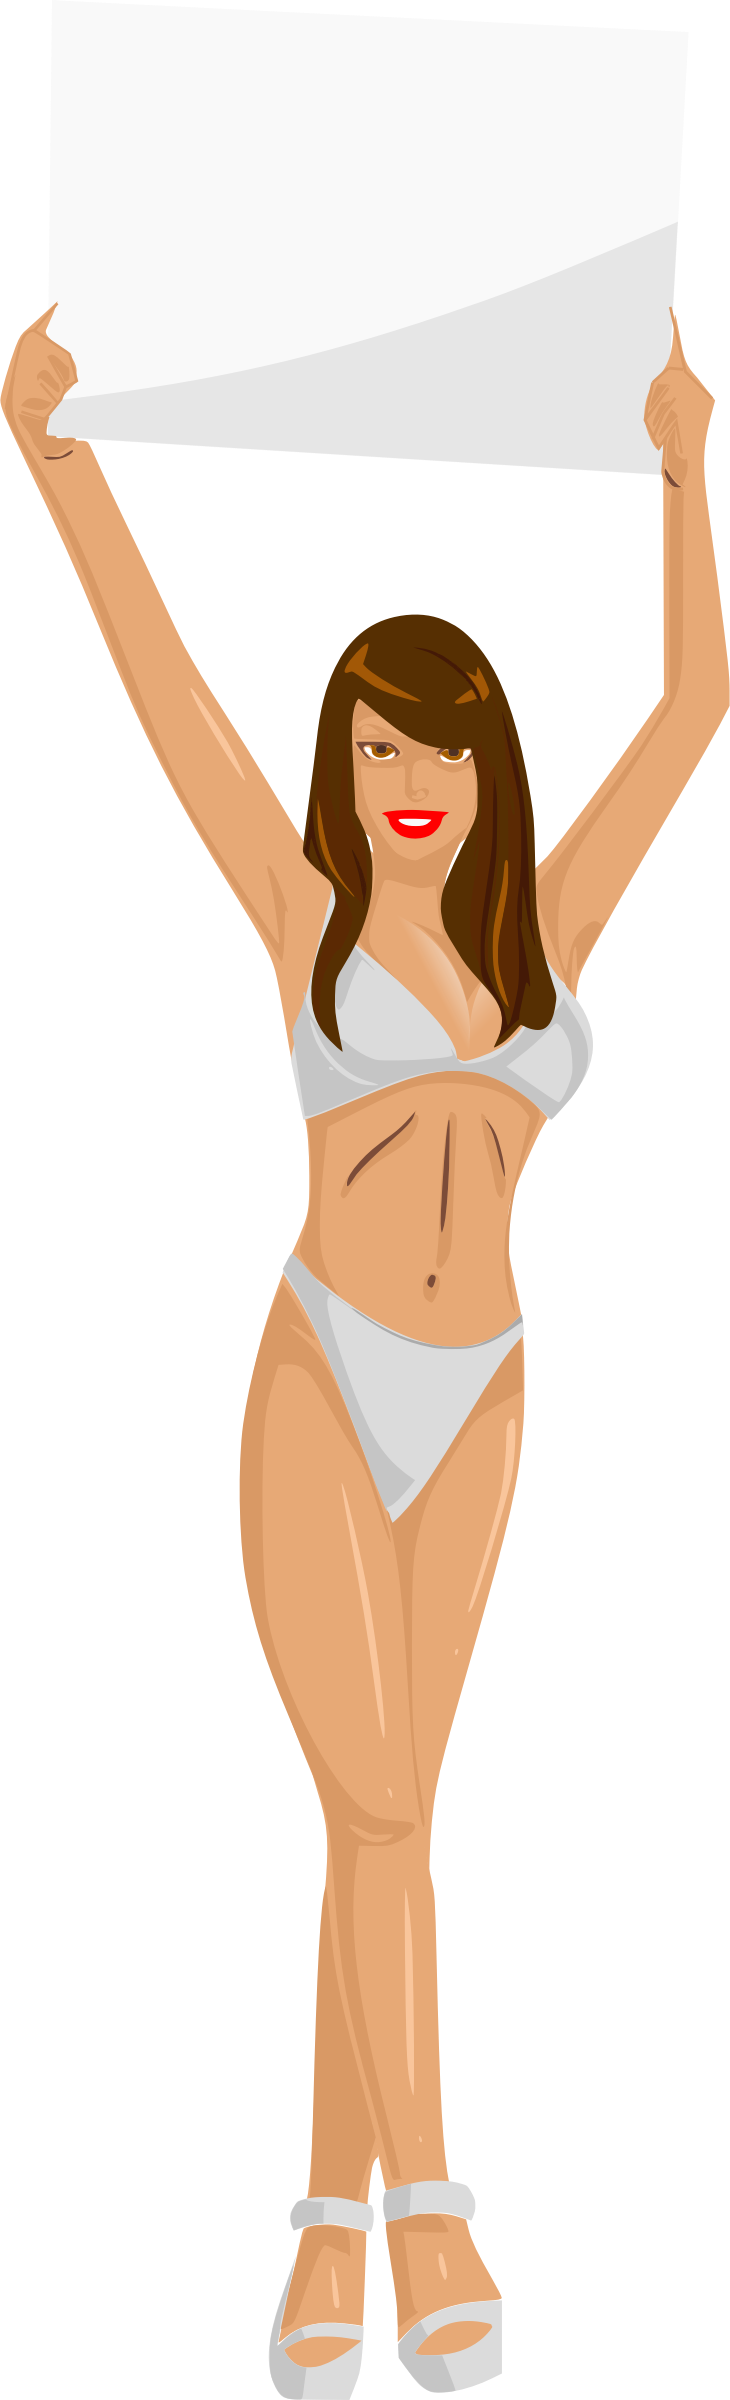 Girl with sign (white bikini, brown hair, light skin) by Firkin